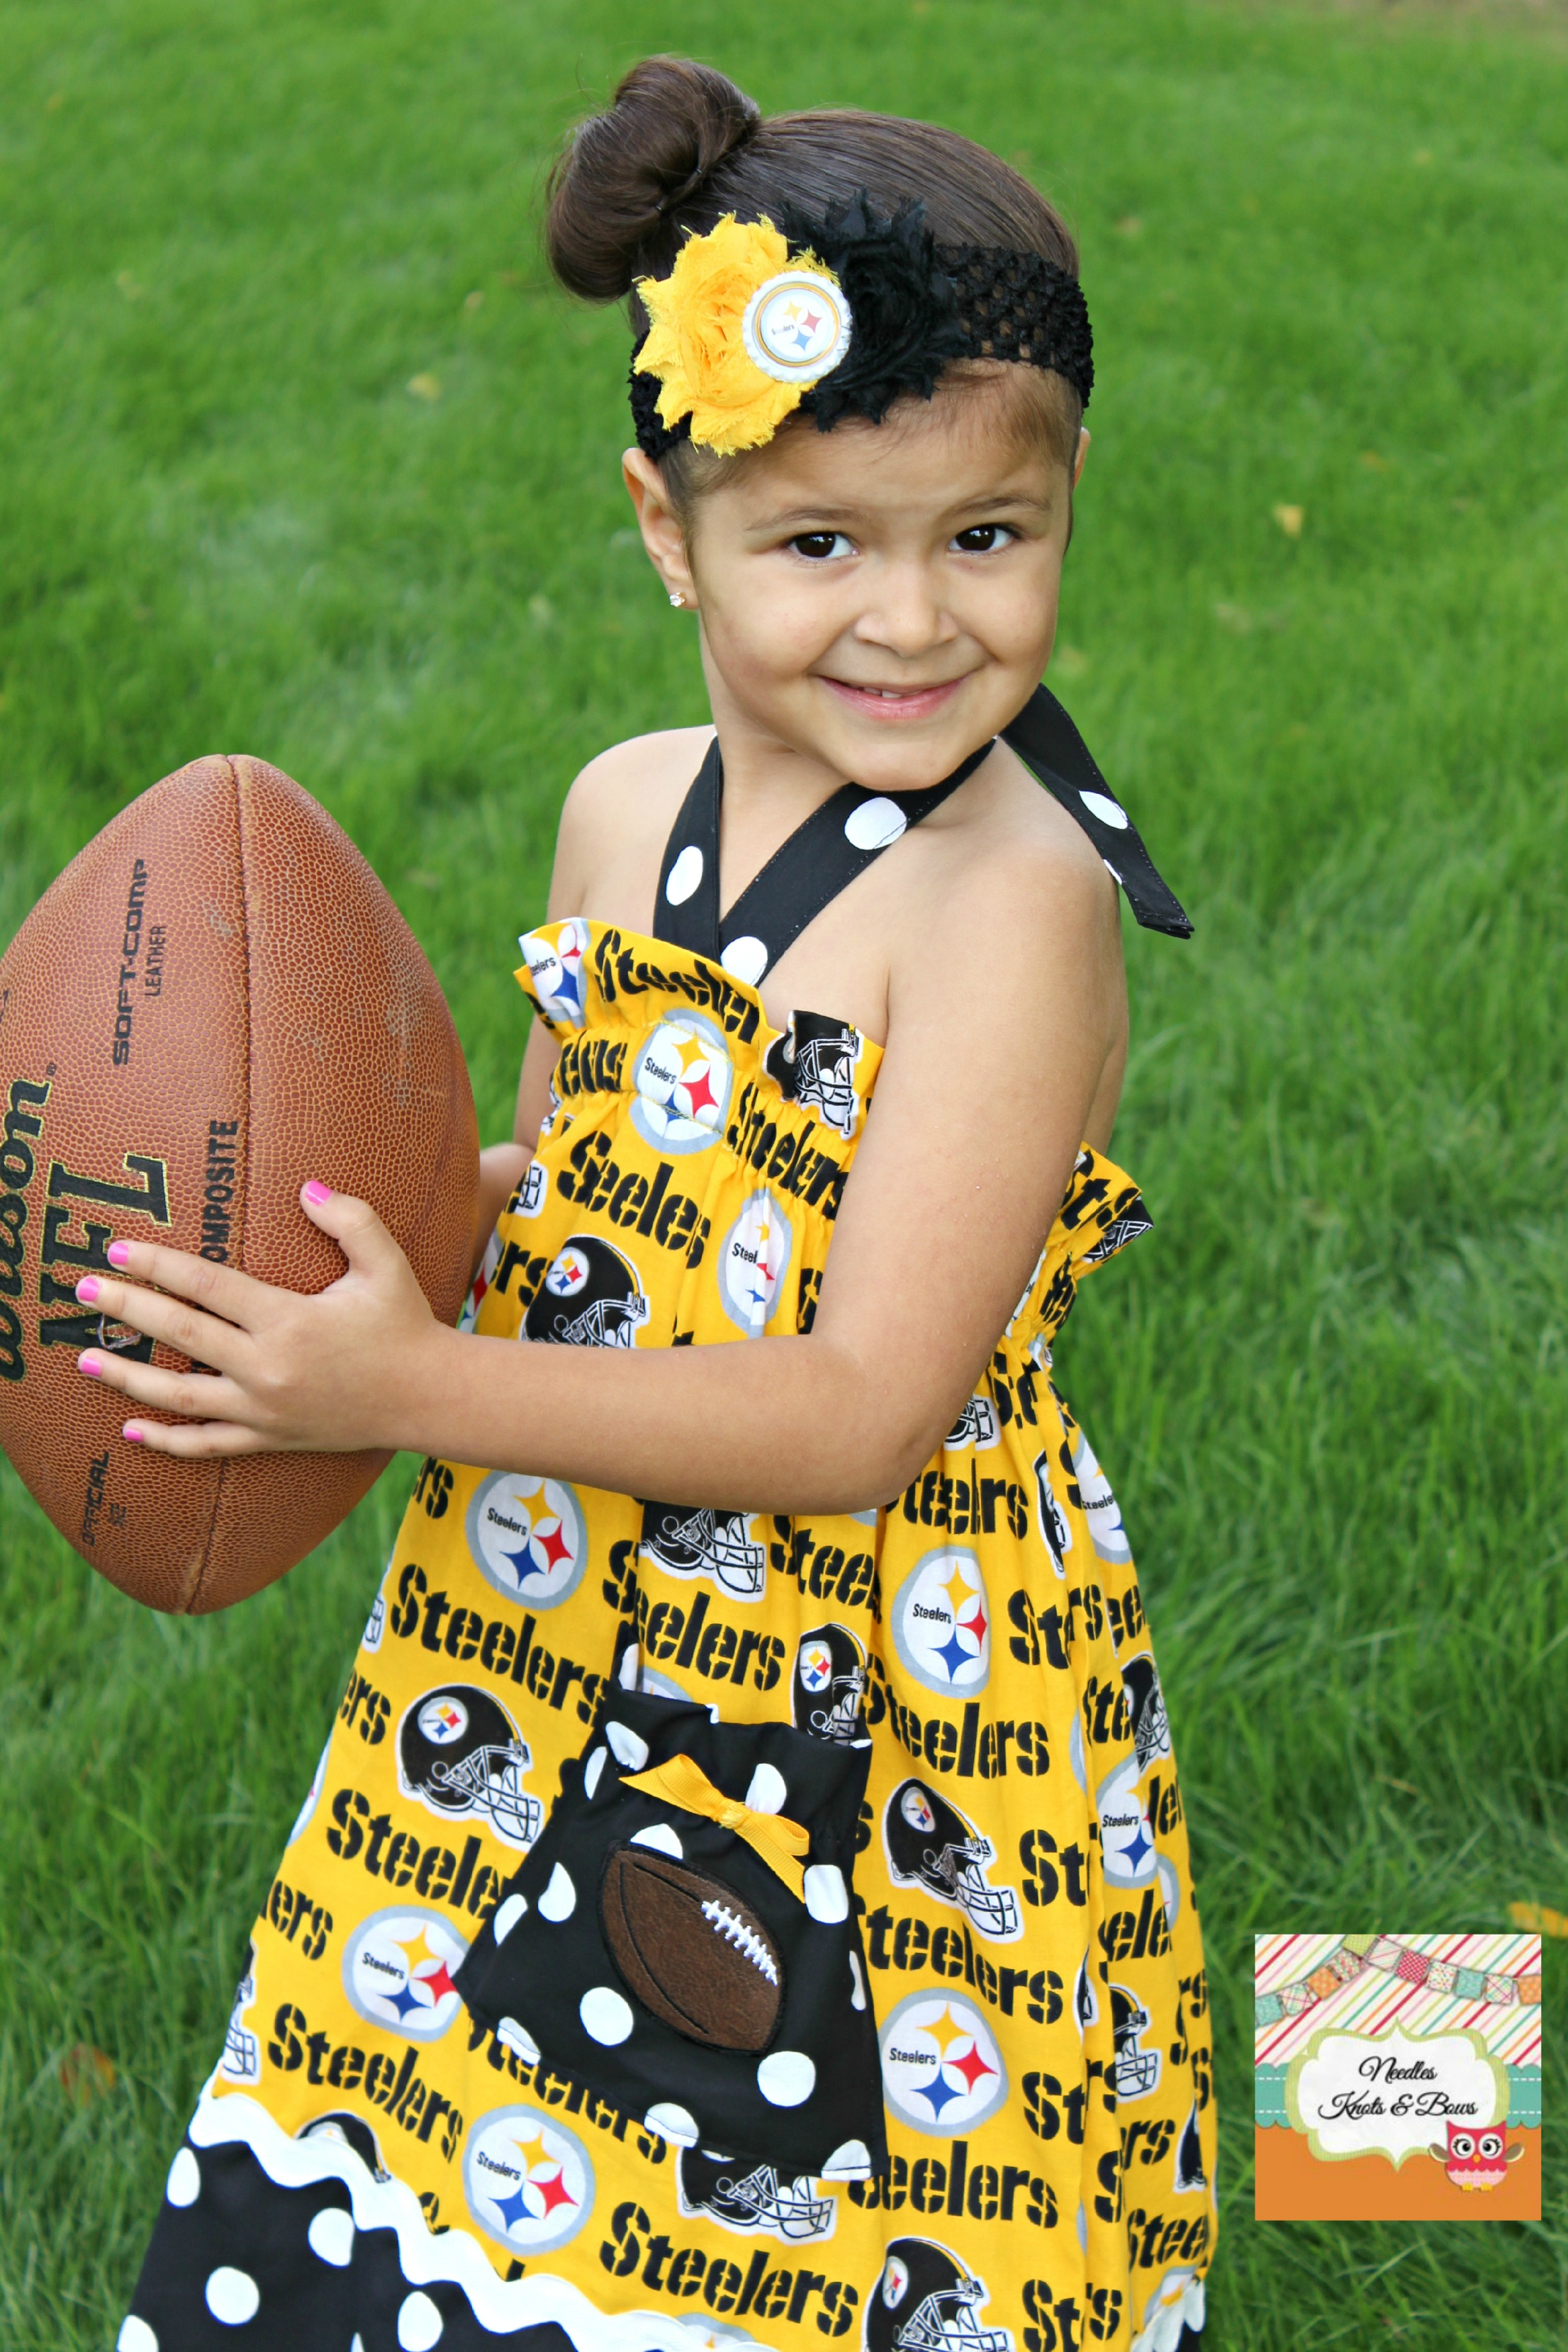 huge discount 03234 0f887 Girls Pittsburgh Steelers Gameday Dress, Girls Pittsburgh Steelers  Cheerleader Outfit, Baby Girls Steelers Gameday Dress, Newborns to size 8  from ...